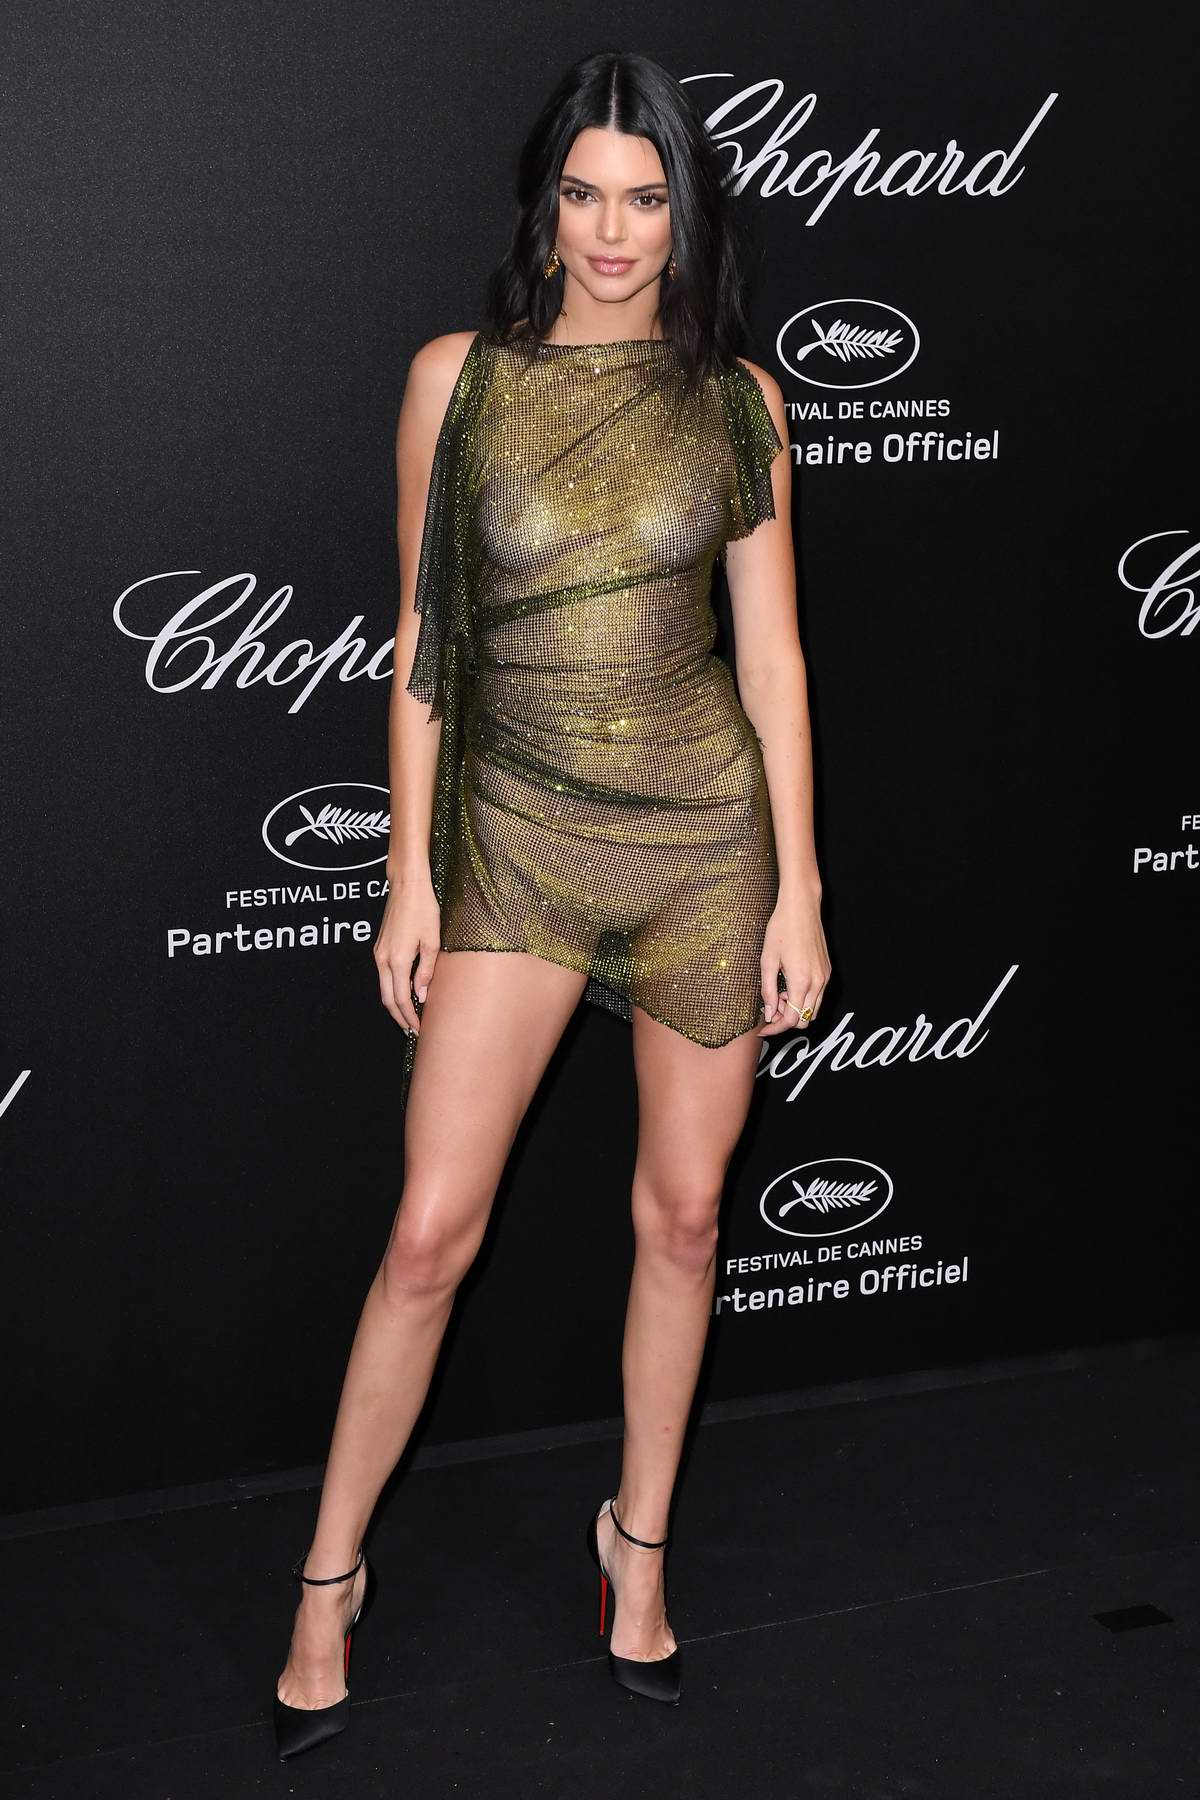 Kendall Jenner attends Secret Chopard party during the 71st Cannes Film Festival in Cannes, France